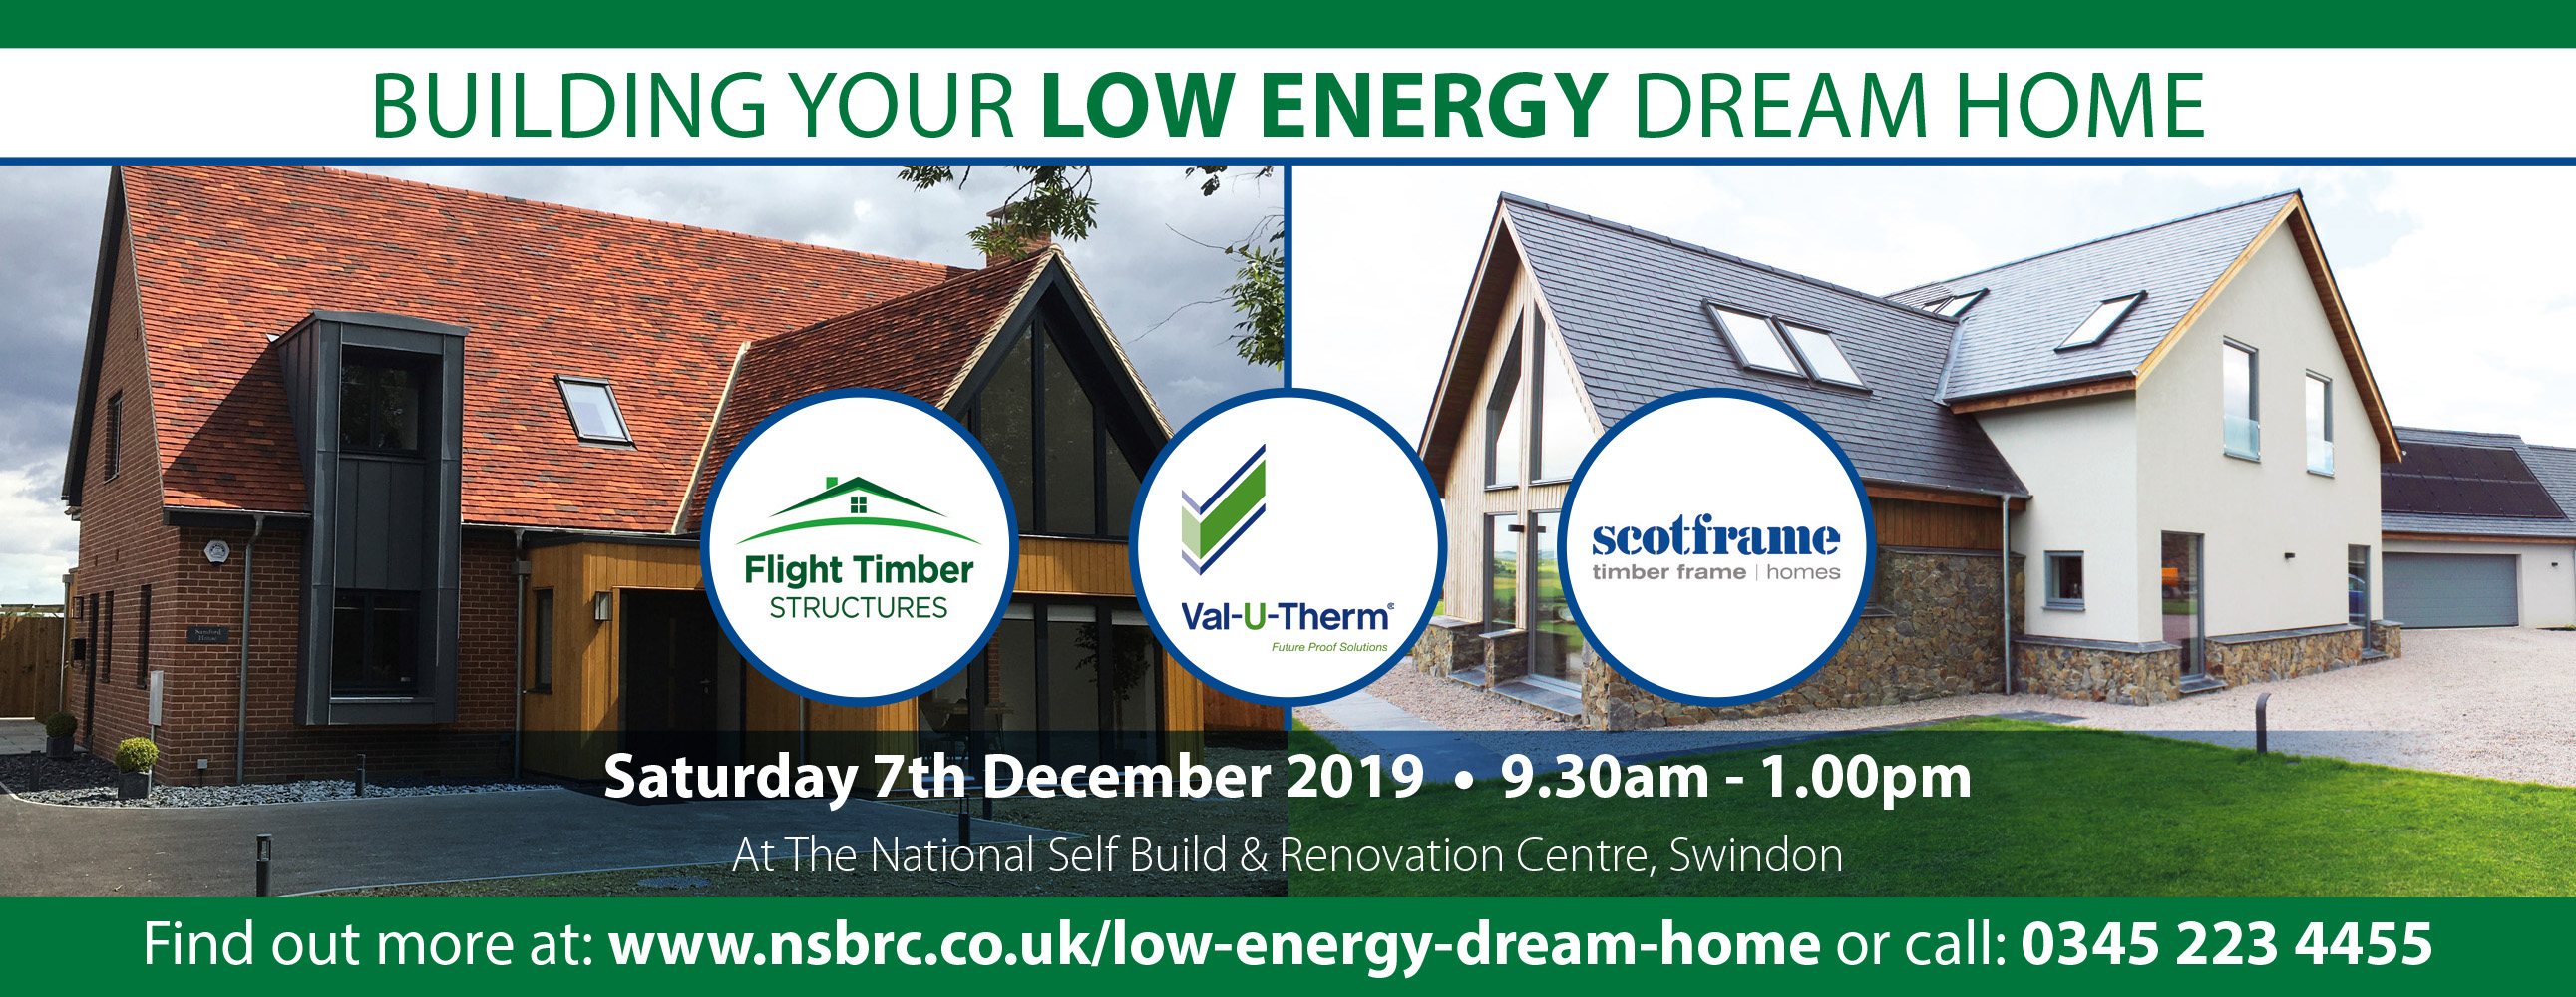 Building Your Low Energy Dream Home Banner